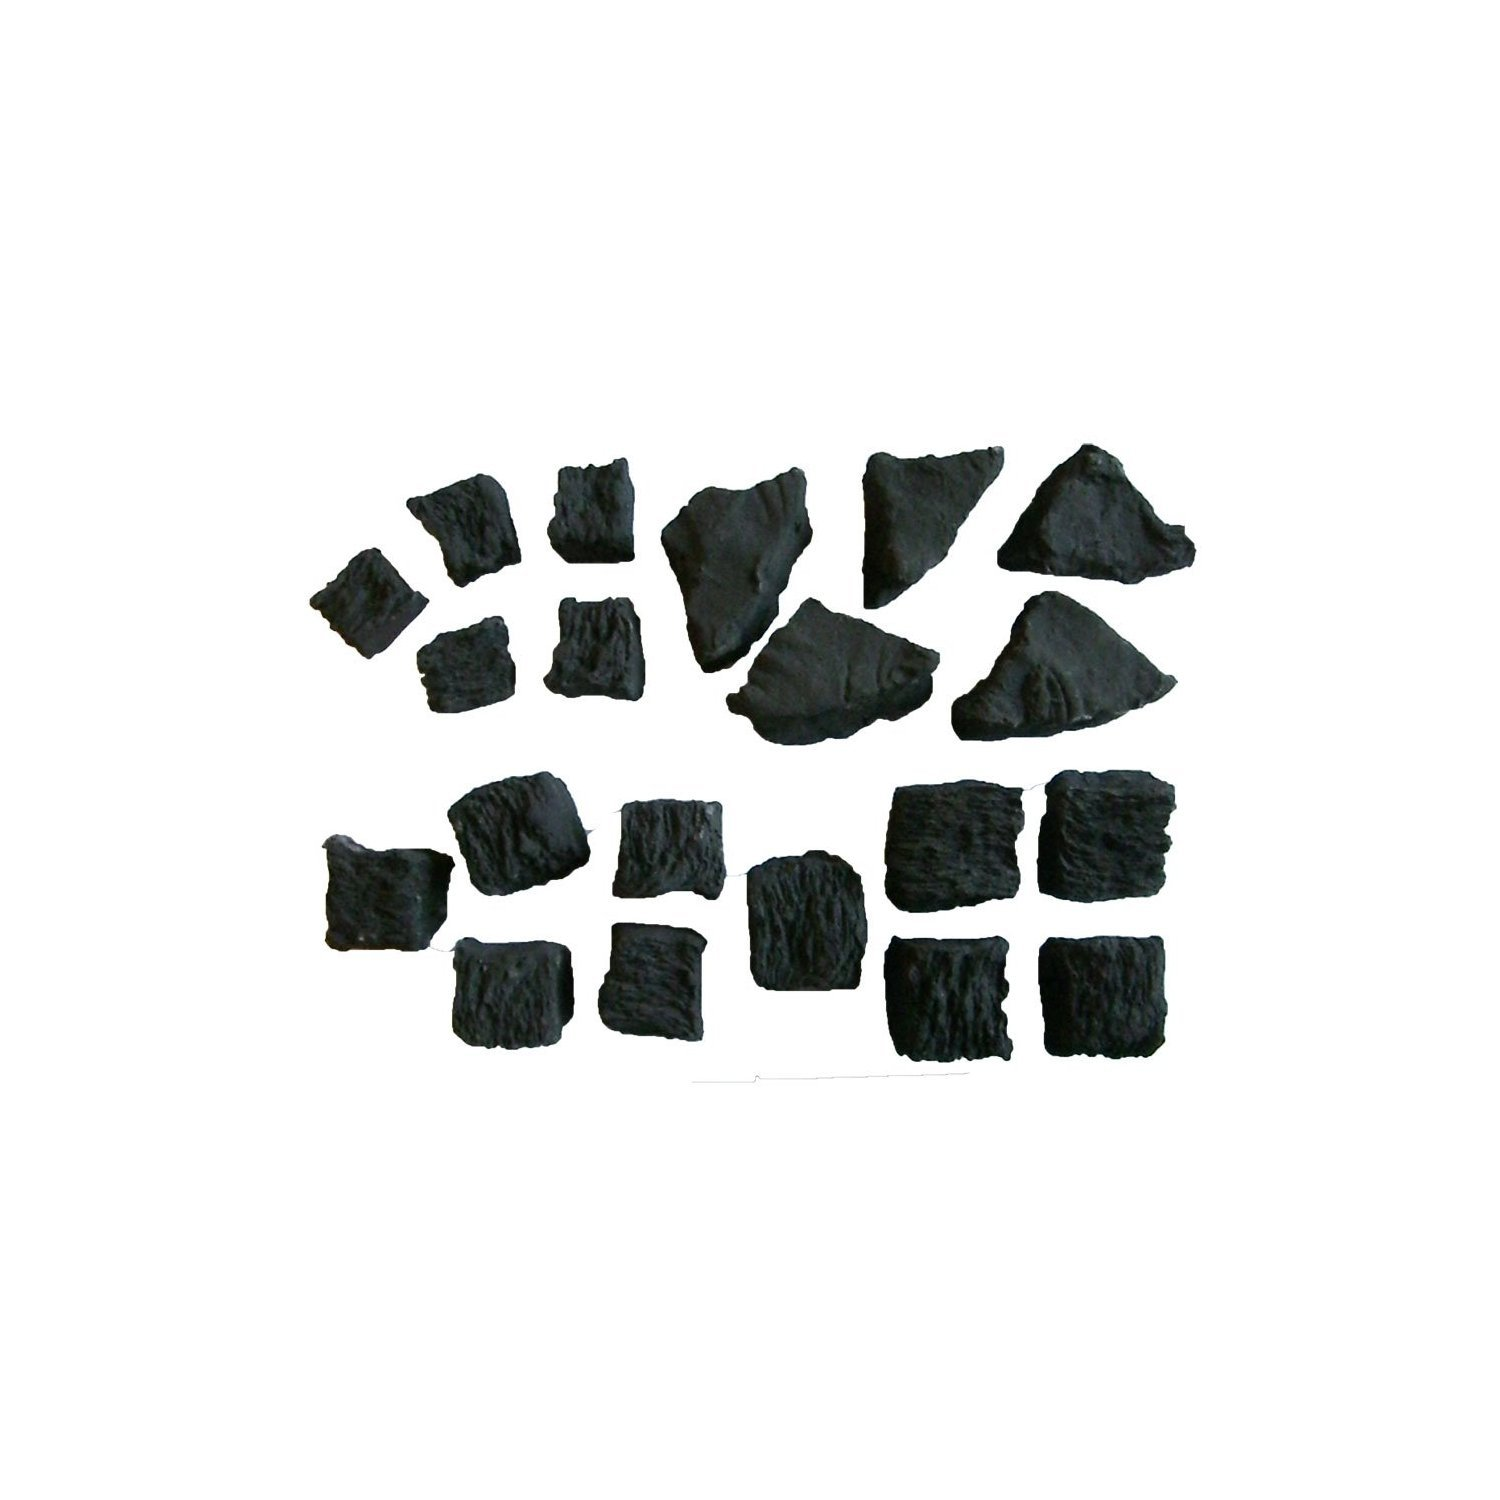 Gas Fire Replacement Coals 5 Small 5 Medium 5 Large 5 Triangle IN BRANDED COALS 4 YOU PACKAGING